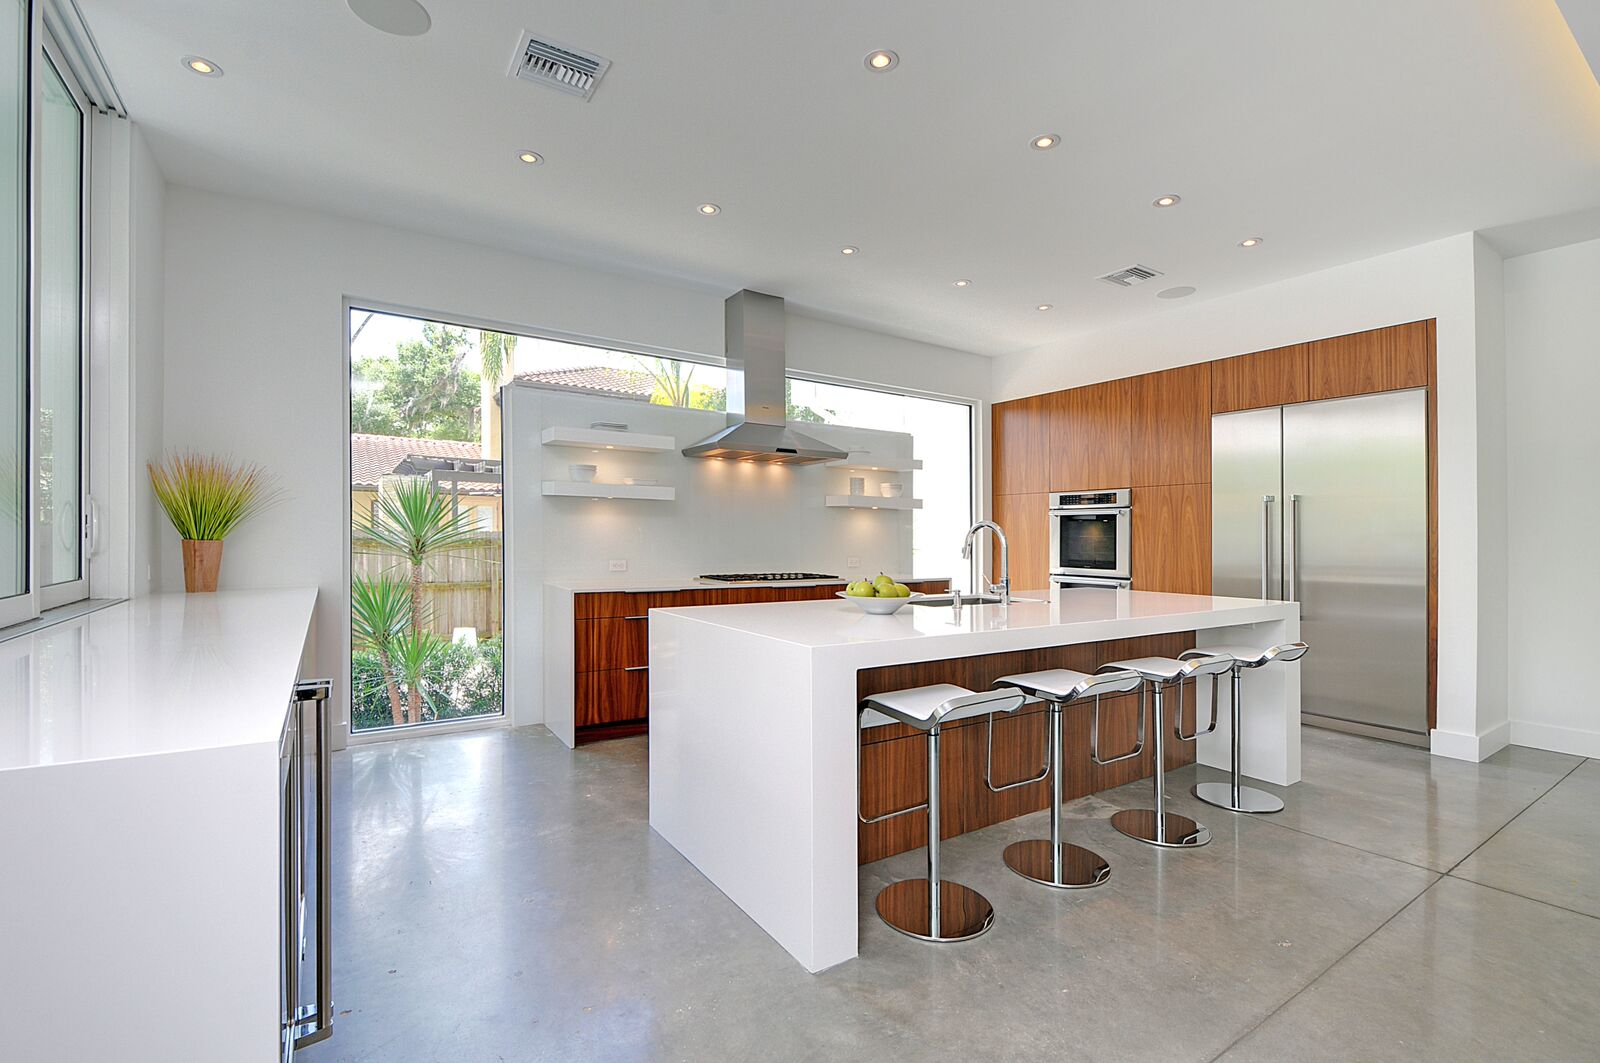 2nd Place Kitchen by Krista Agapito